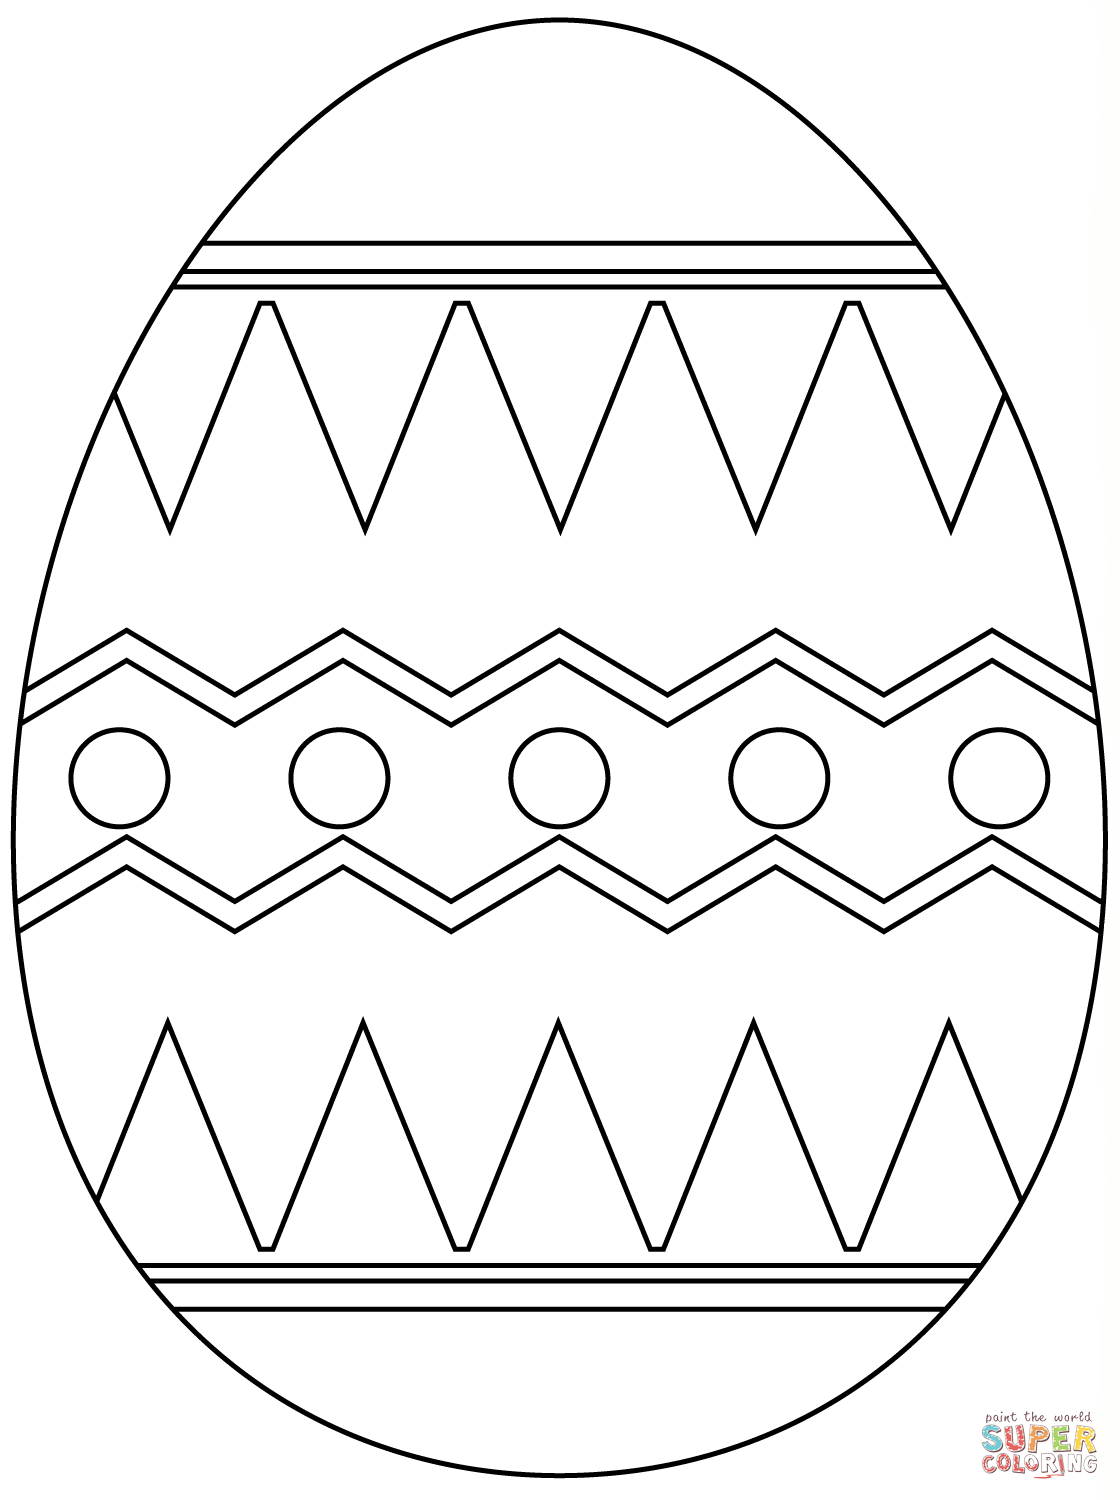 Easter Eggs Coloring Pages | Free Coloring Pages - Free Printable Easter Stuff